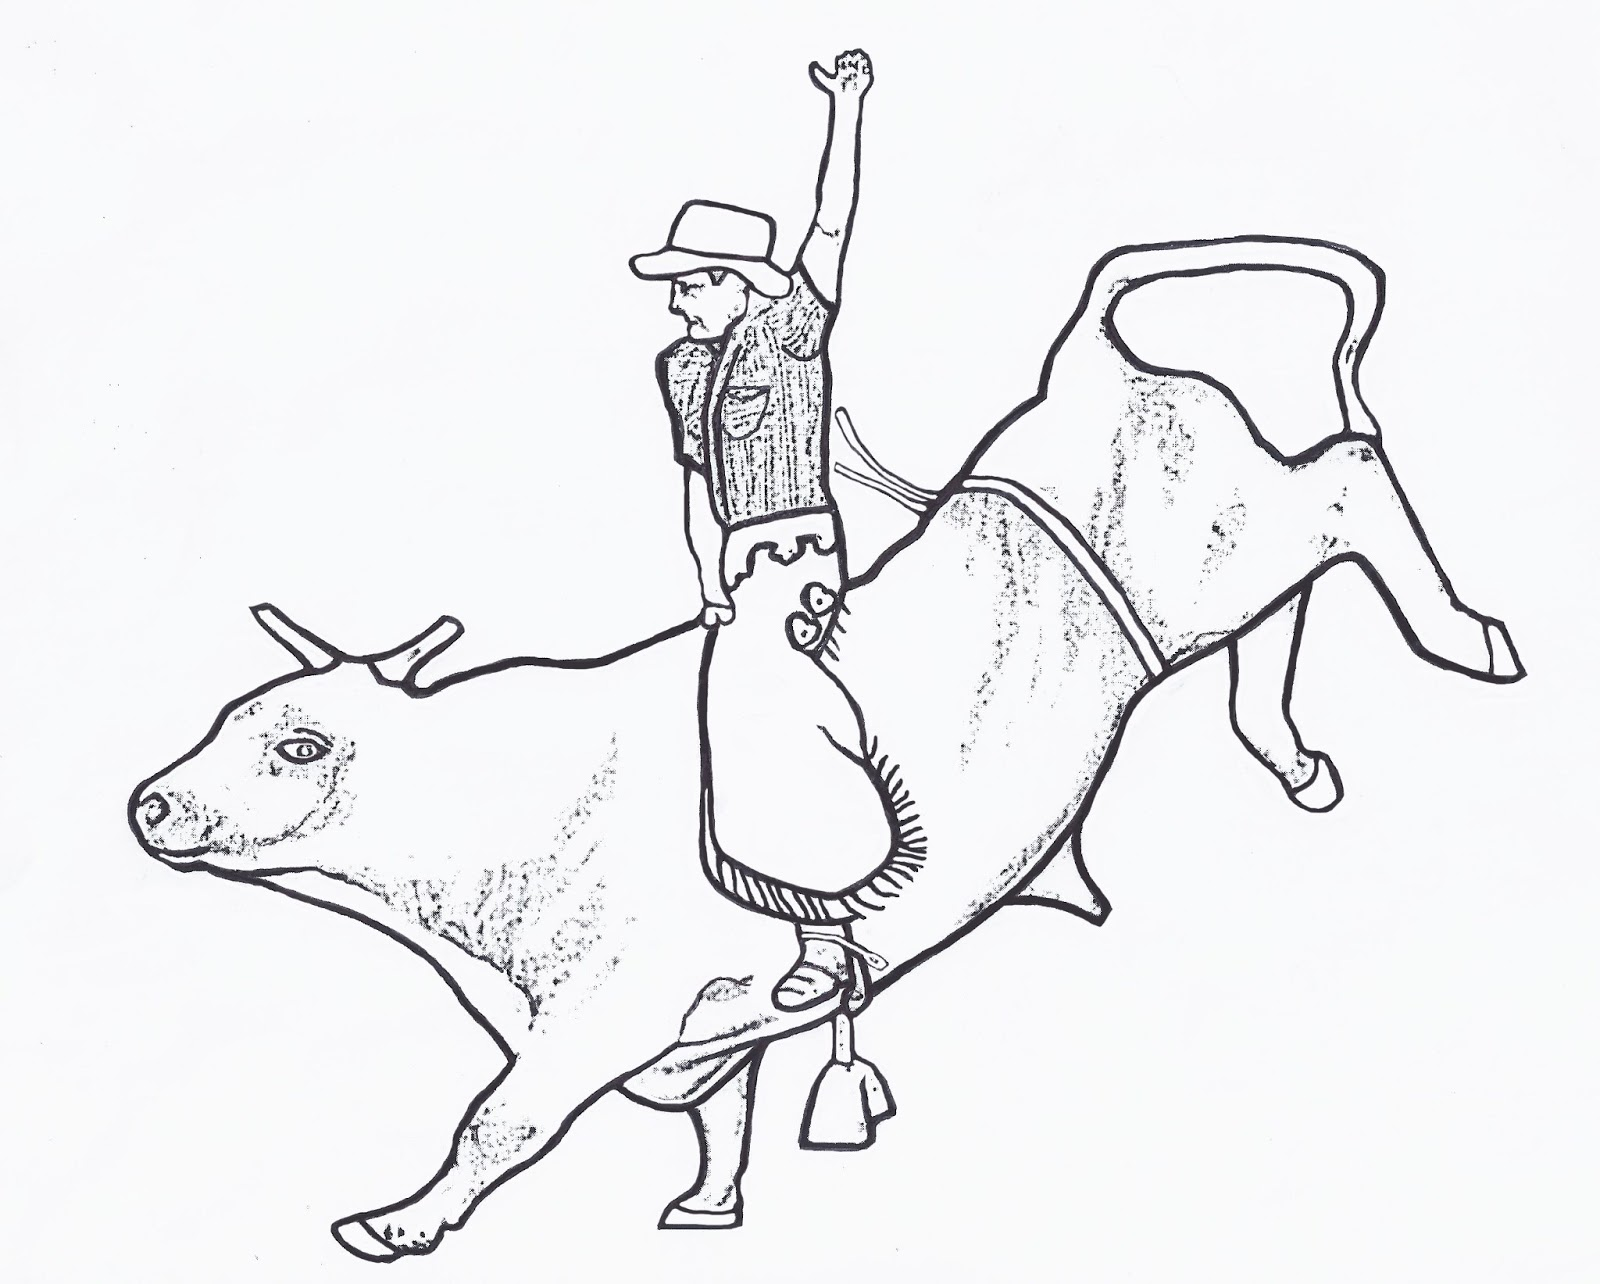 bronc rider coloring pages - photo#3